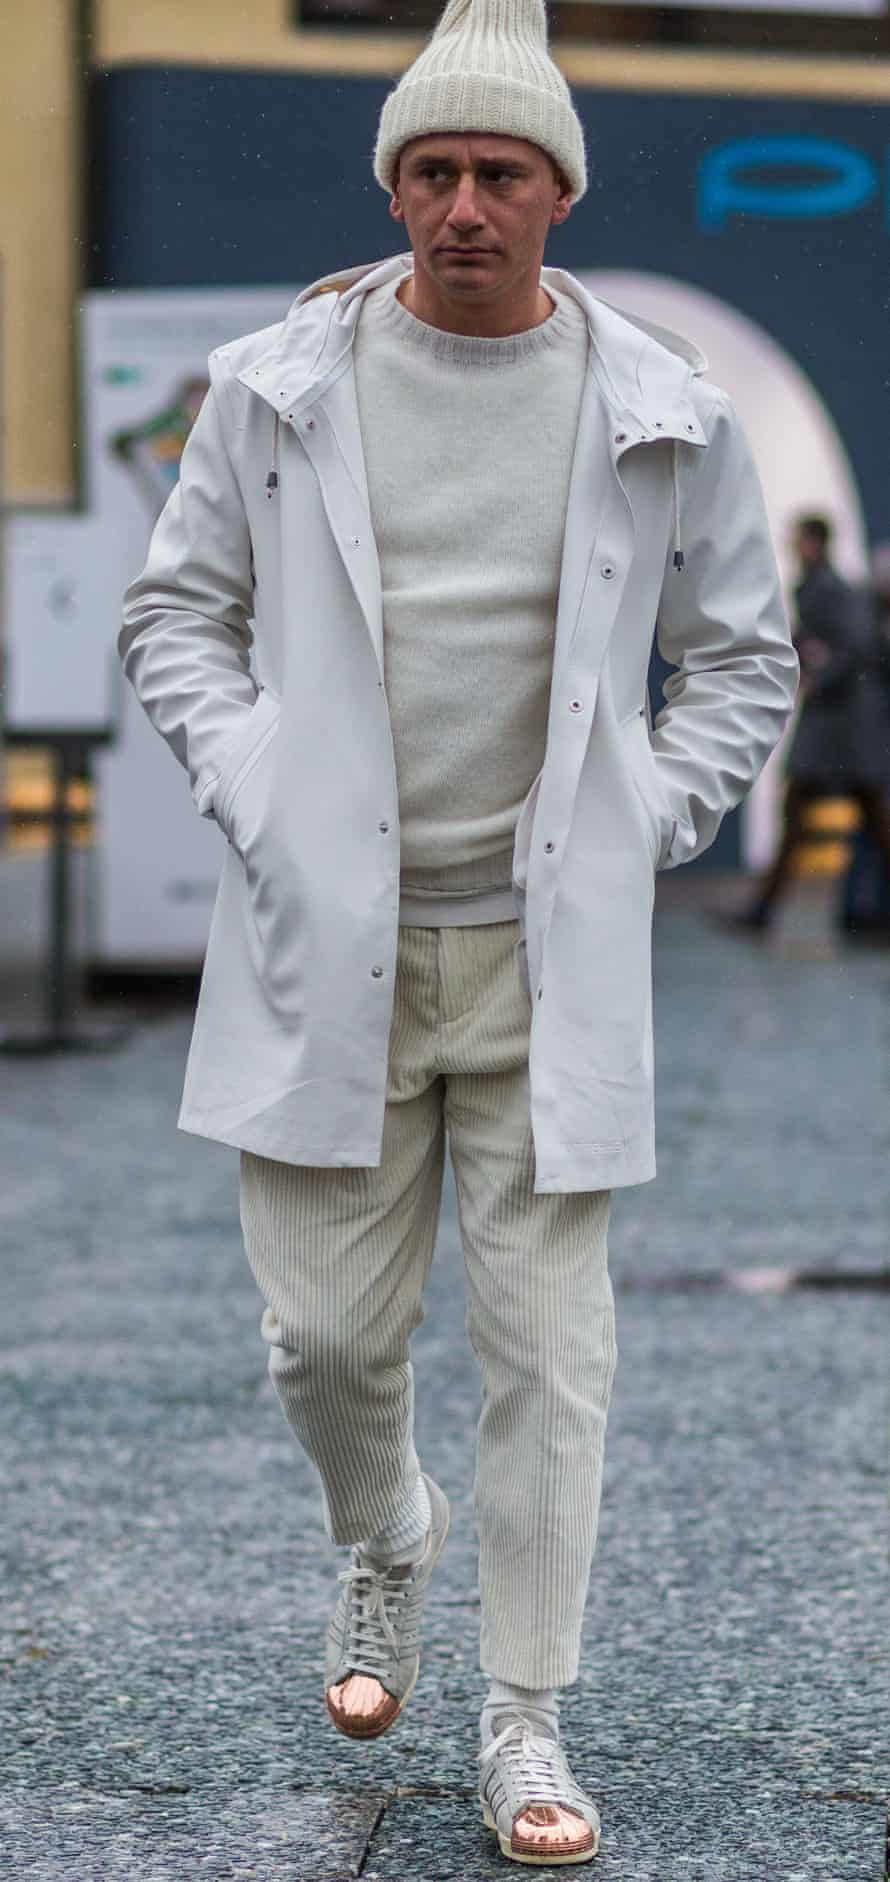 A street-style fisherman-inspired look.